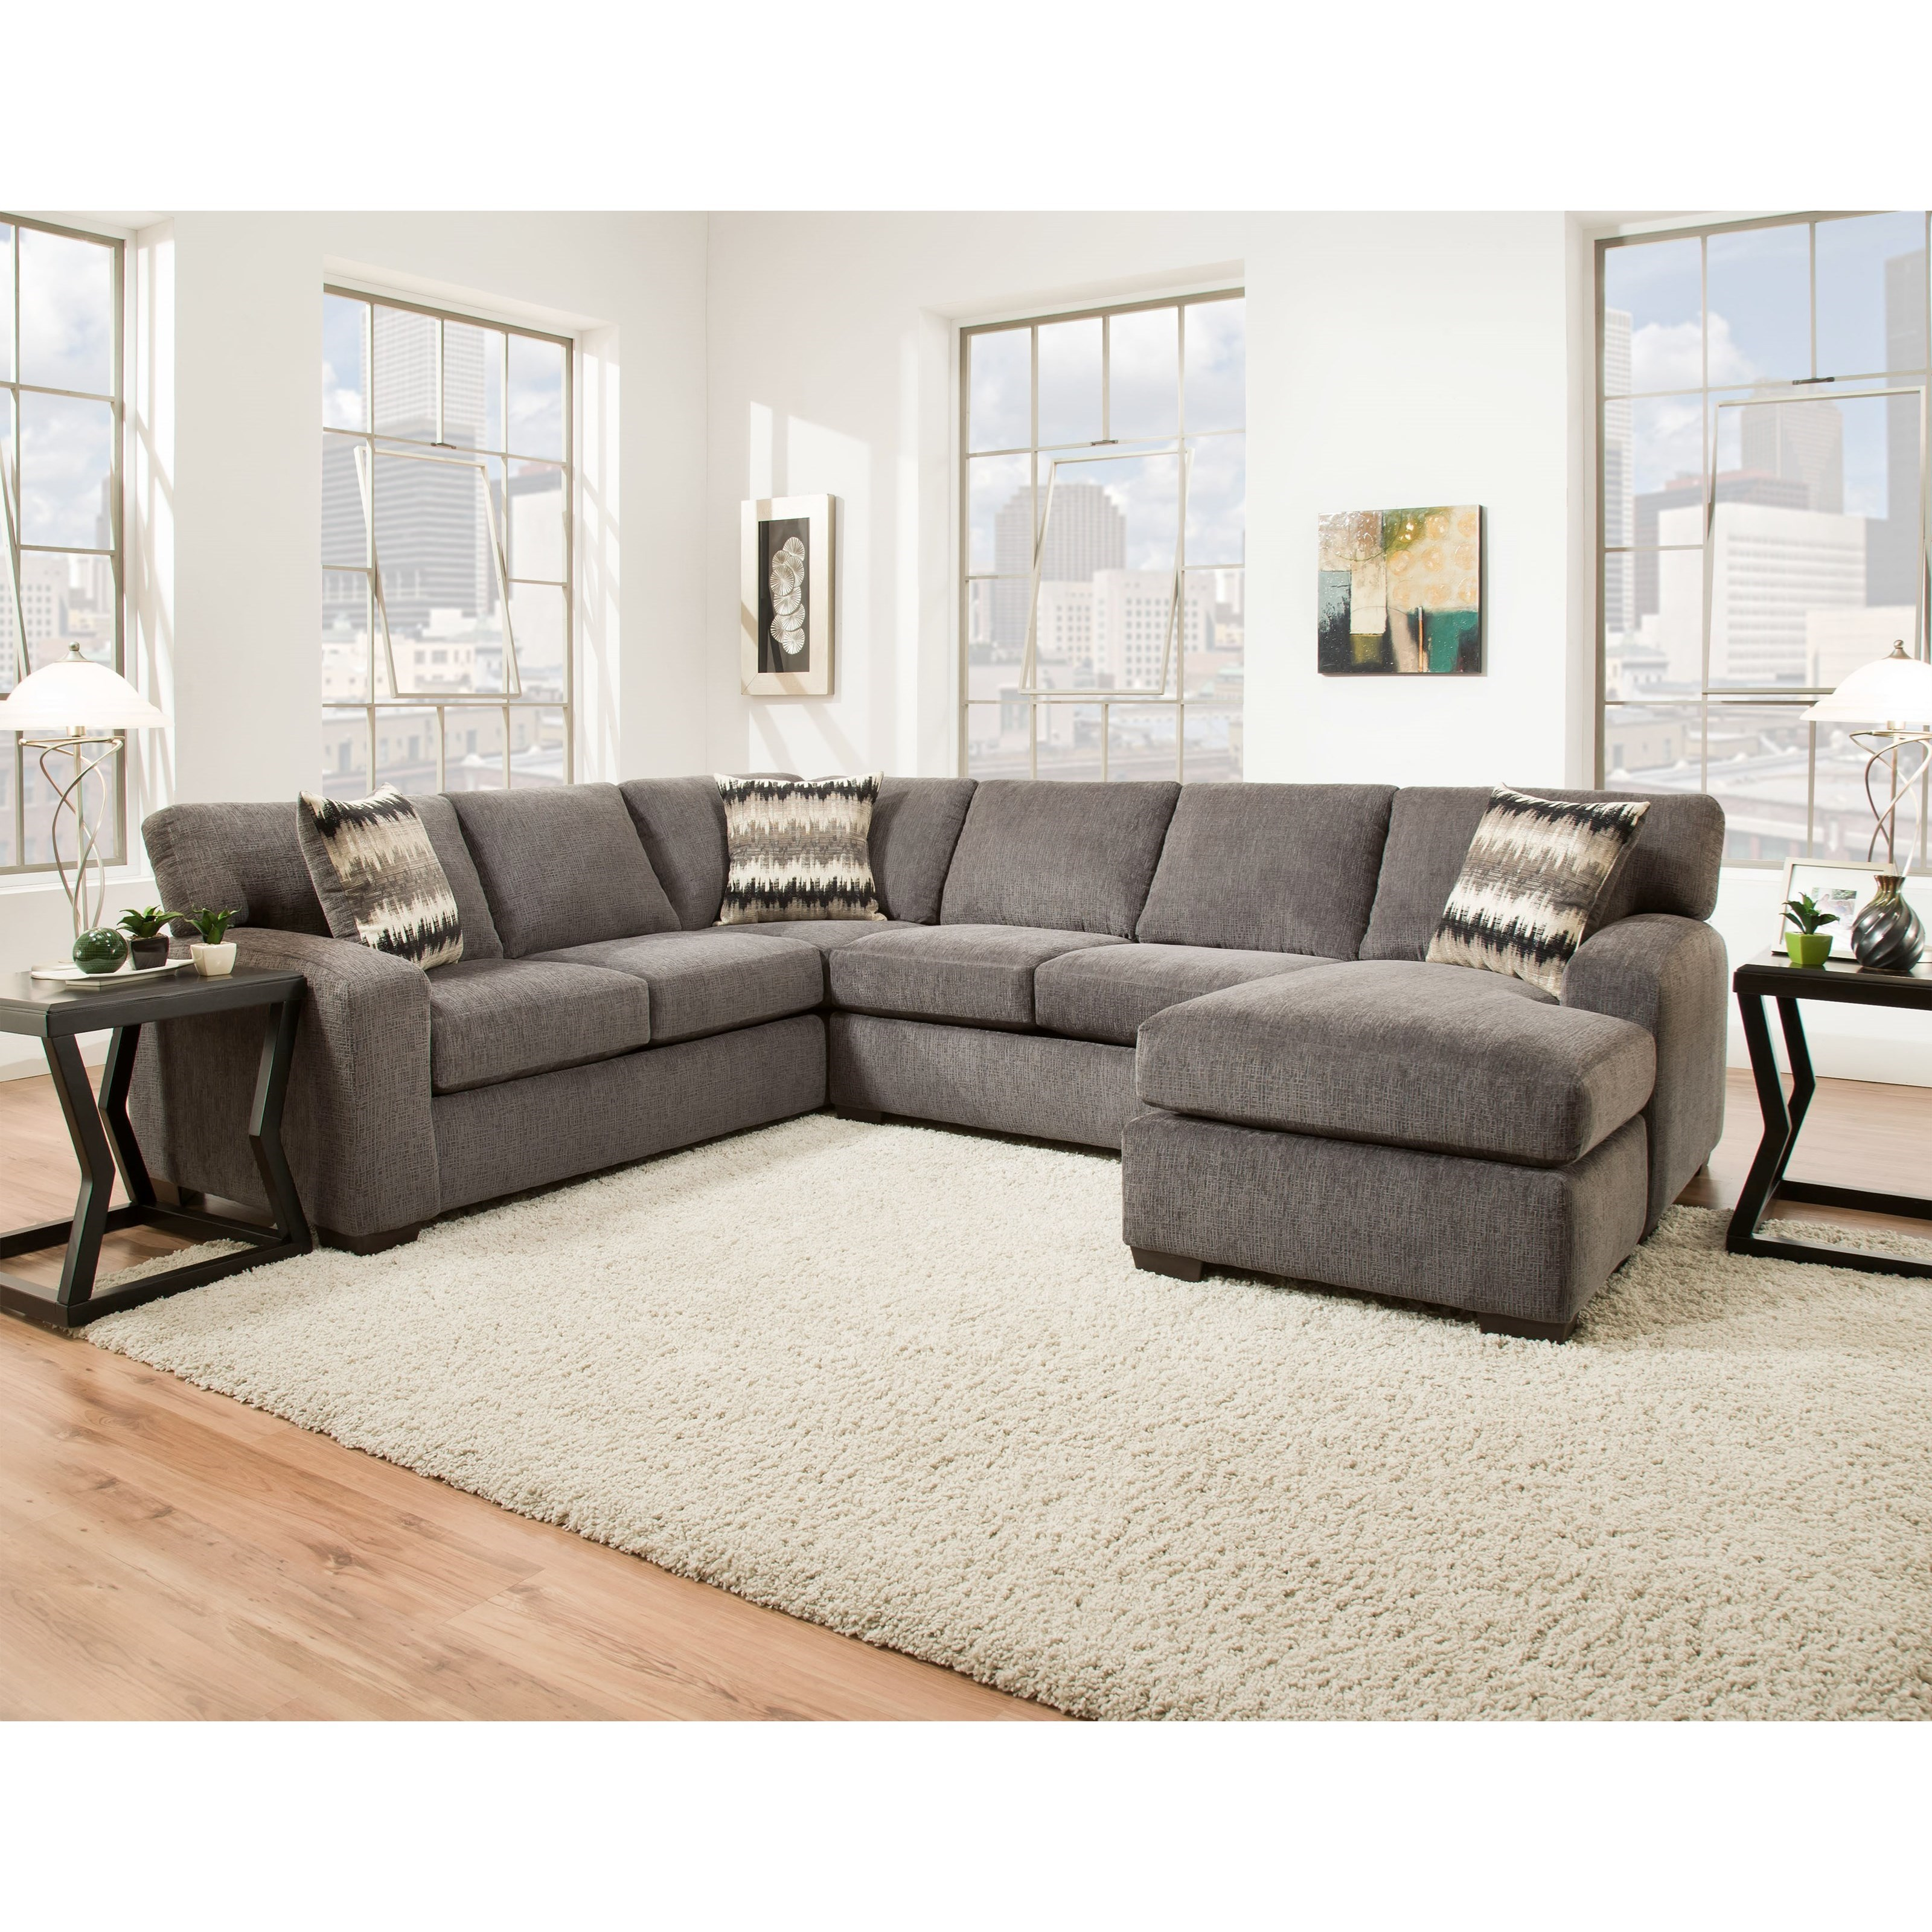 American Furniture 5250 Sectional Sofa - Seats 5 - Item Number: 5210+5230-4214